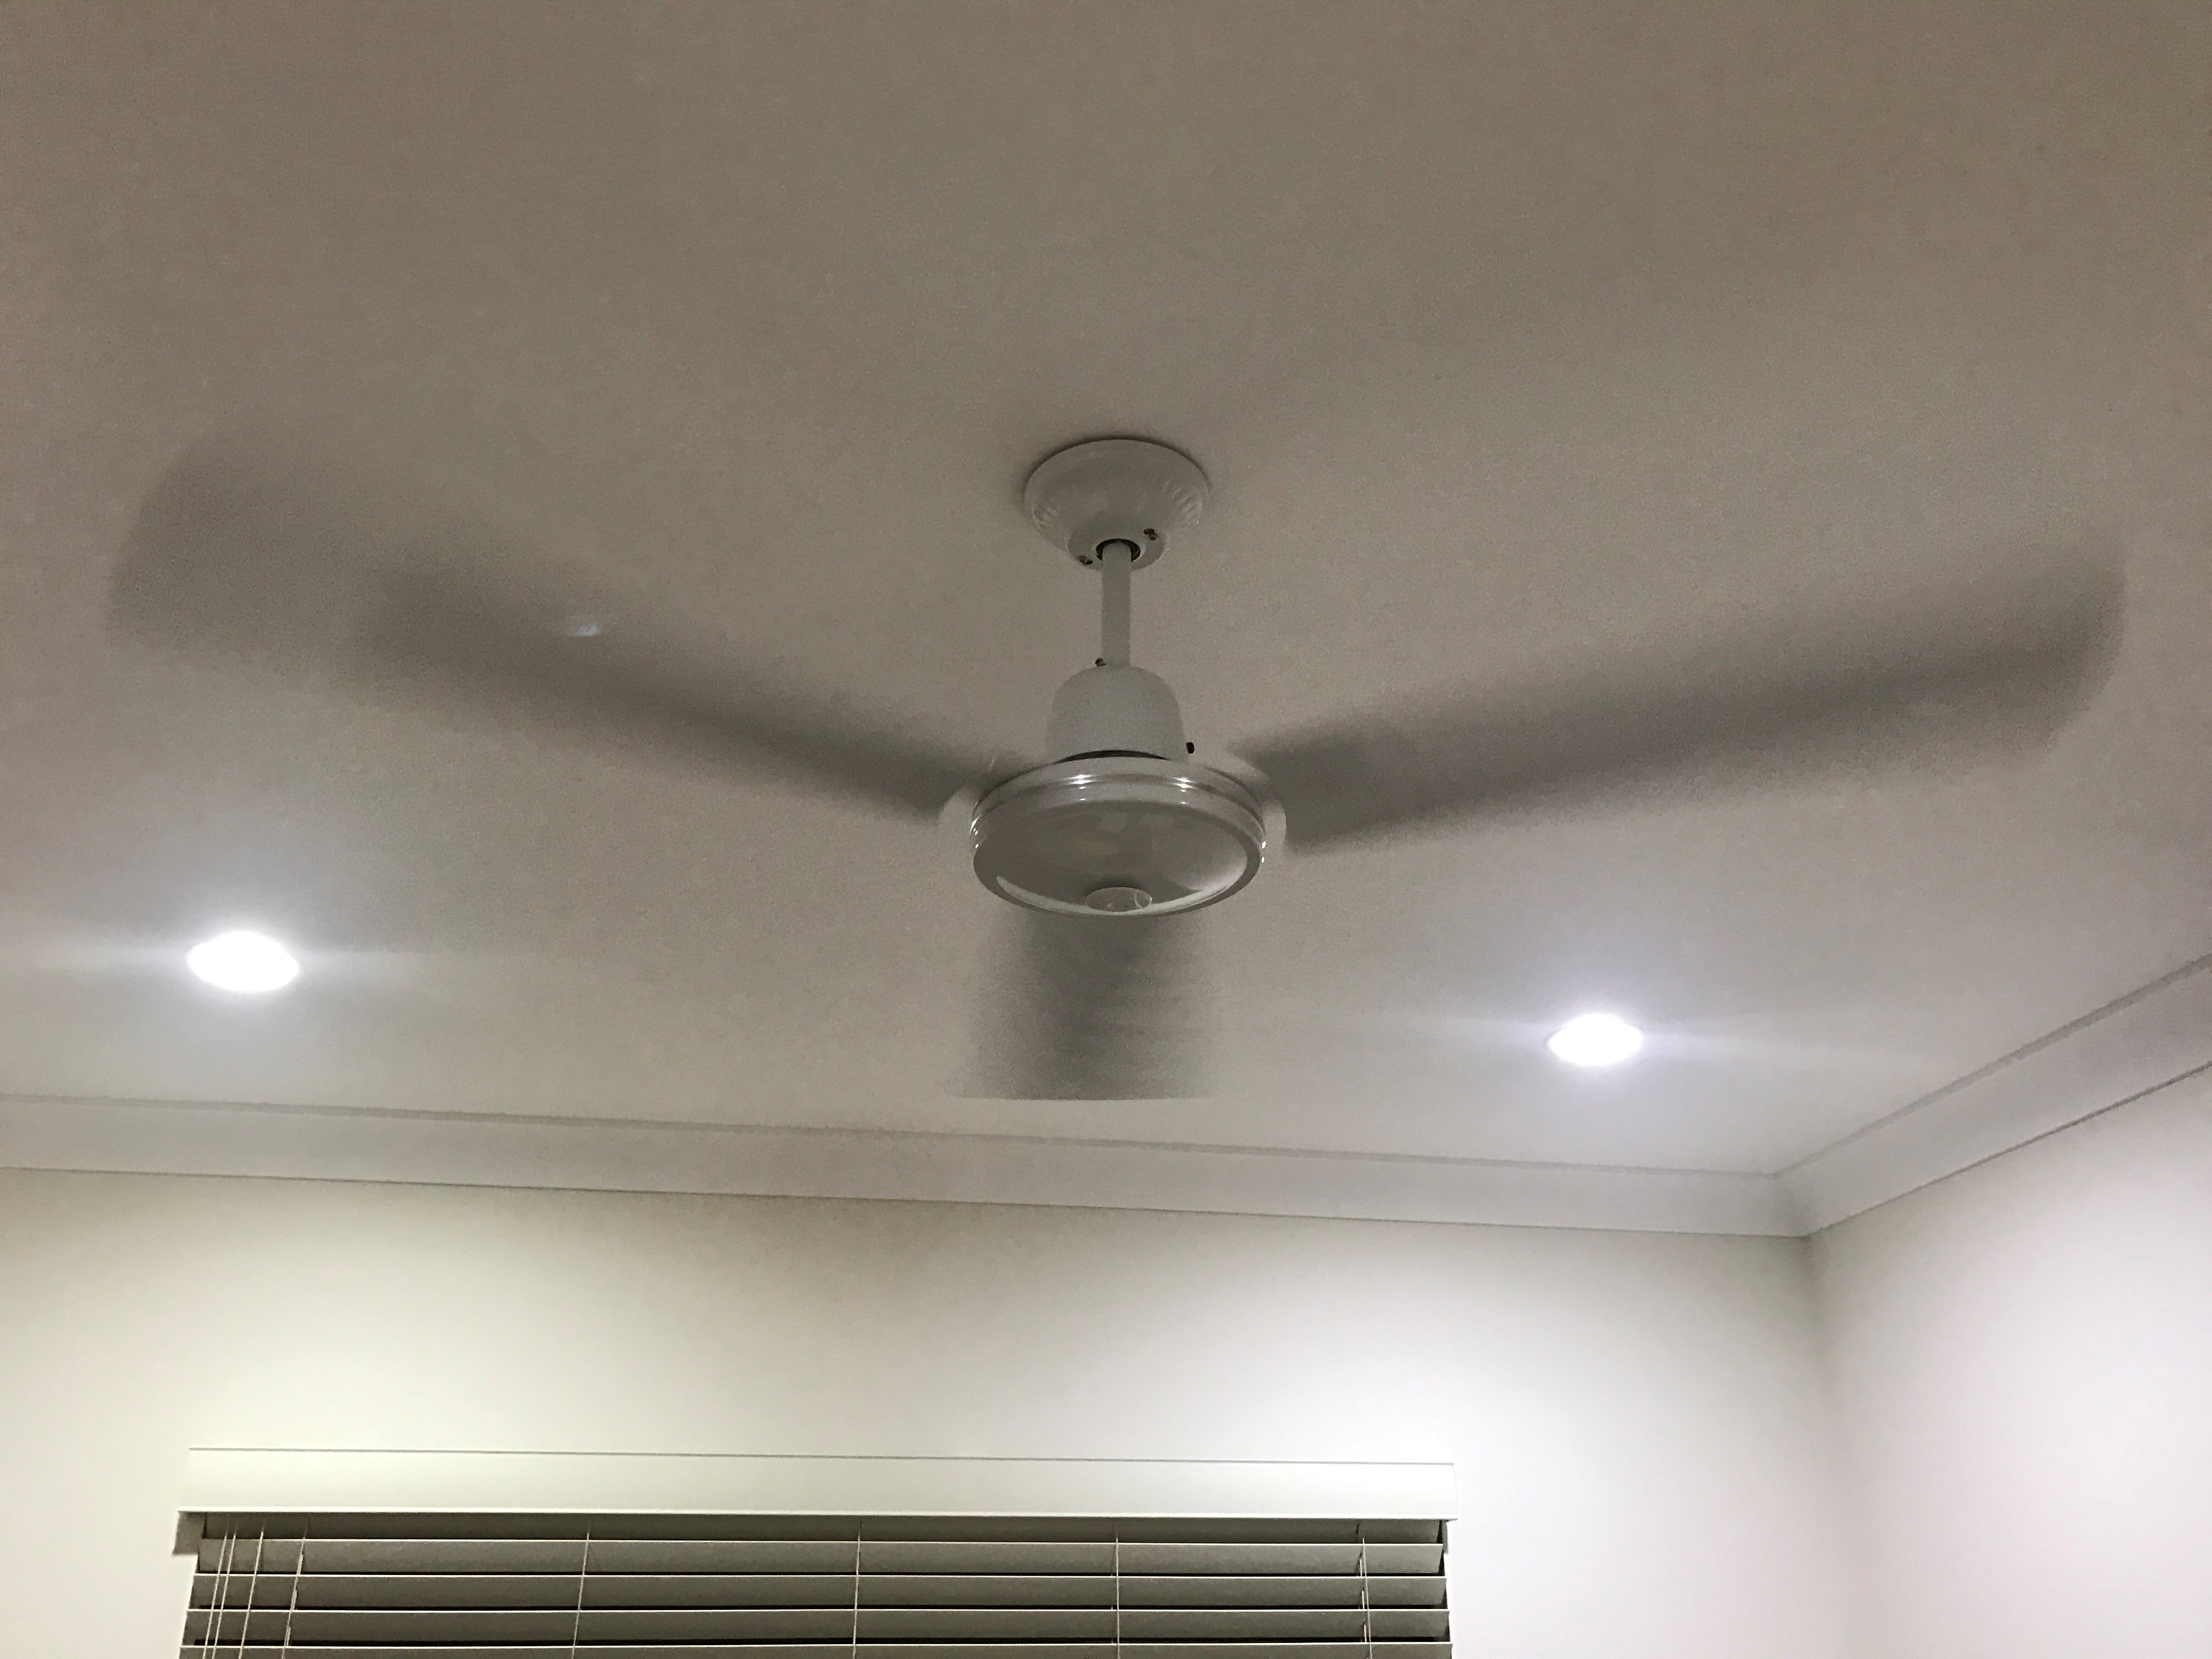 Hpm Ceiling Fans Gallery